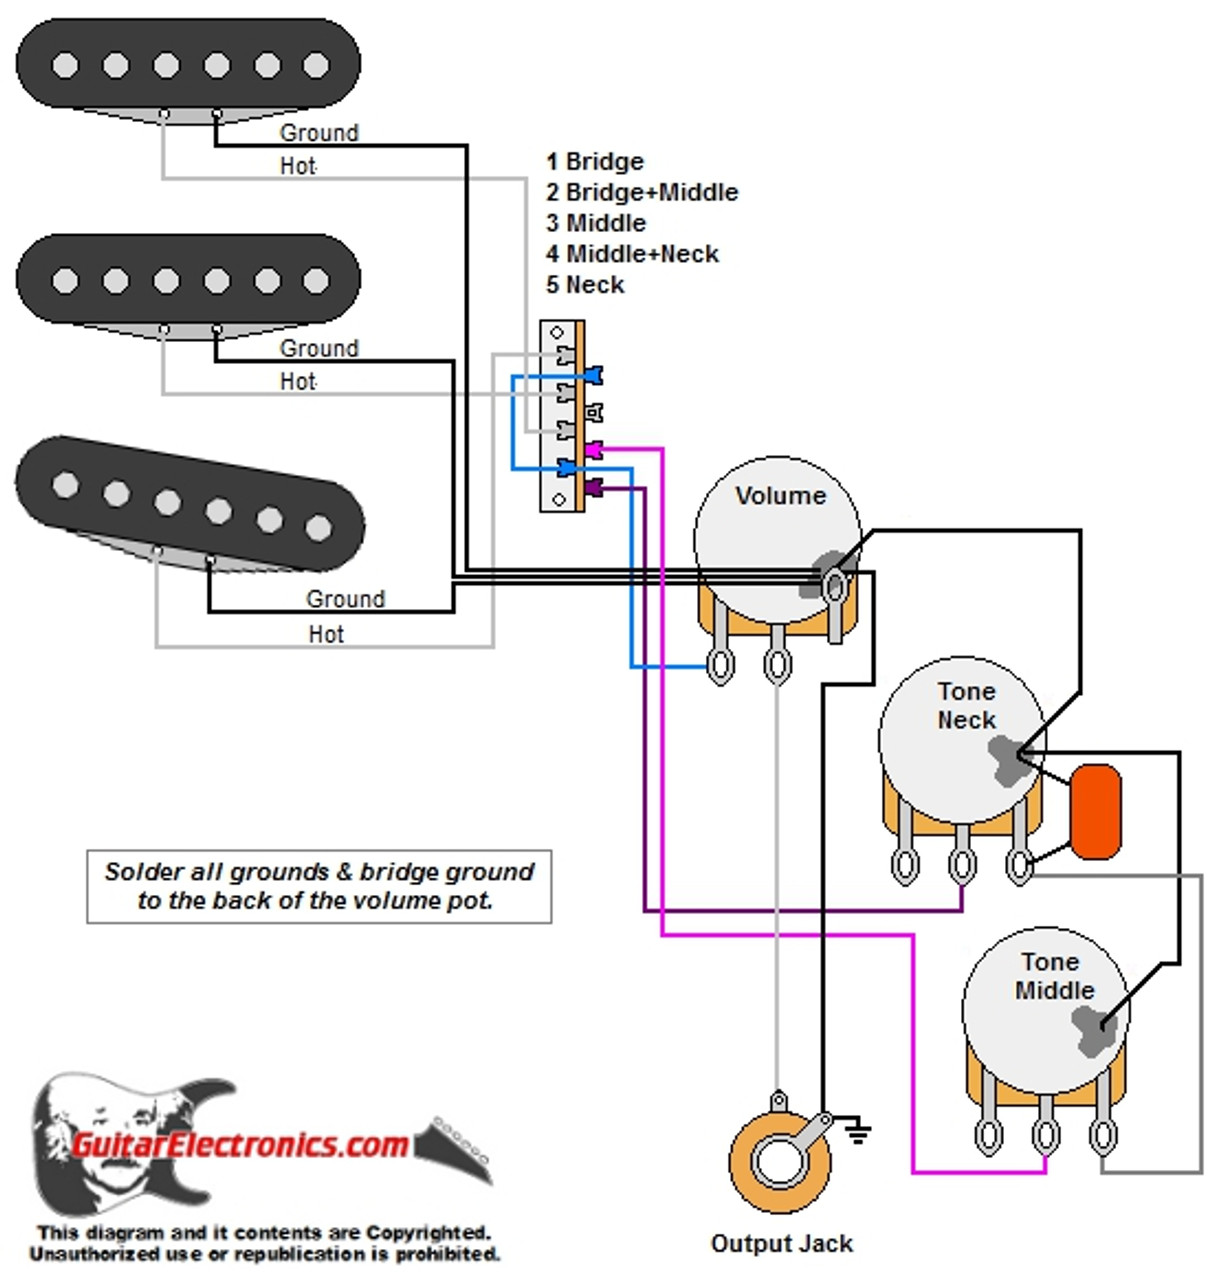 Strat Style Guitar Wiring Diagram | Guitar Potentiometers Wiring Diagrams |  | Guitar Electronics